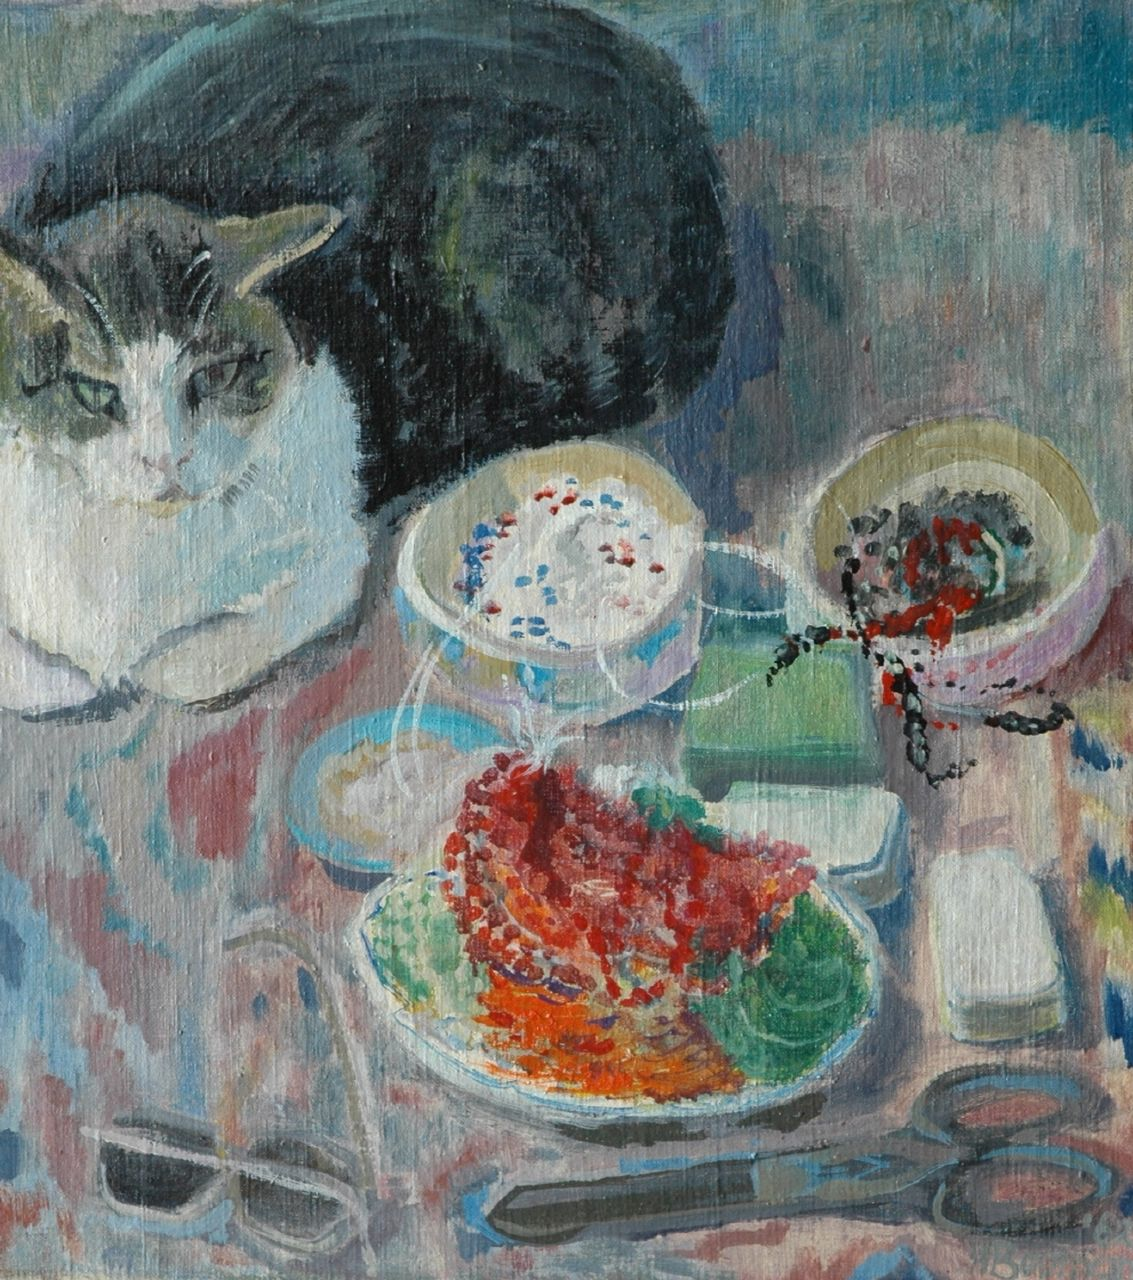 Hannie Bouman | Still life with cat, oil on canvas, 49.9 x 45.0 cm, signed l.r. and dated '62